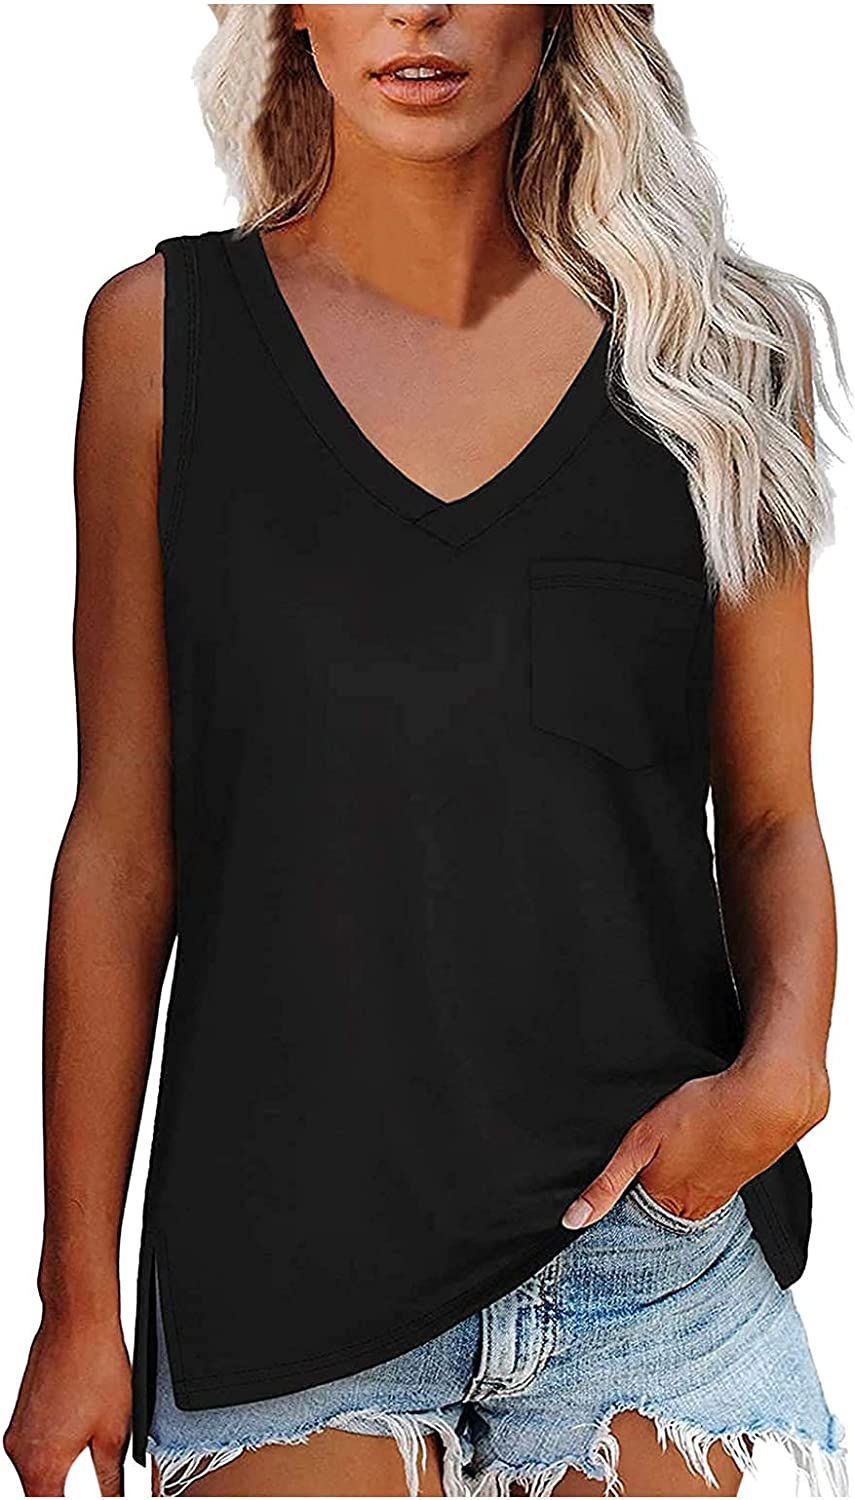 Womens Tank Tops Summer Casual V Neck Sleeveless Solid Color Shirts Button Up Loose Fit T Shirts with Pocket